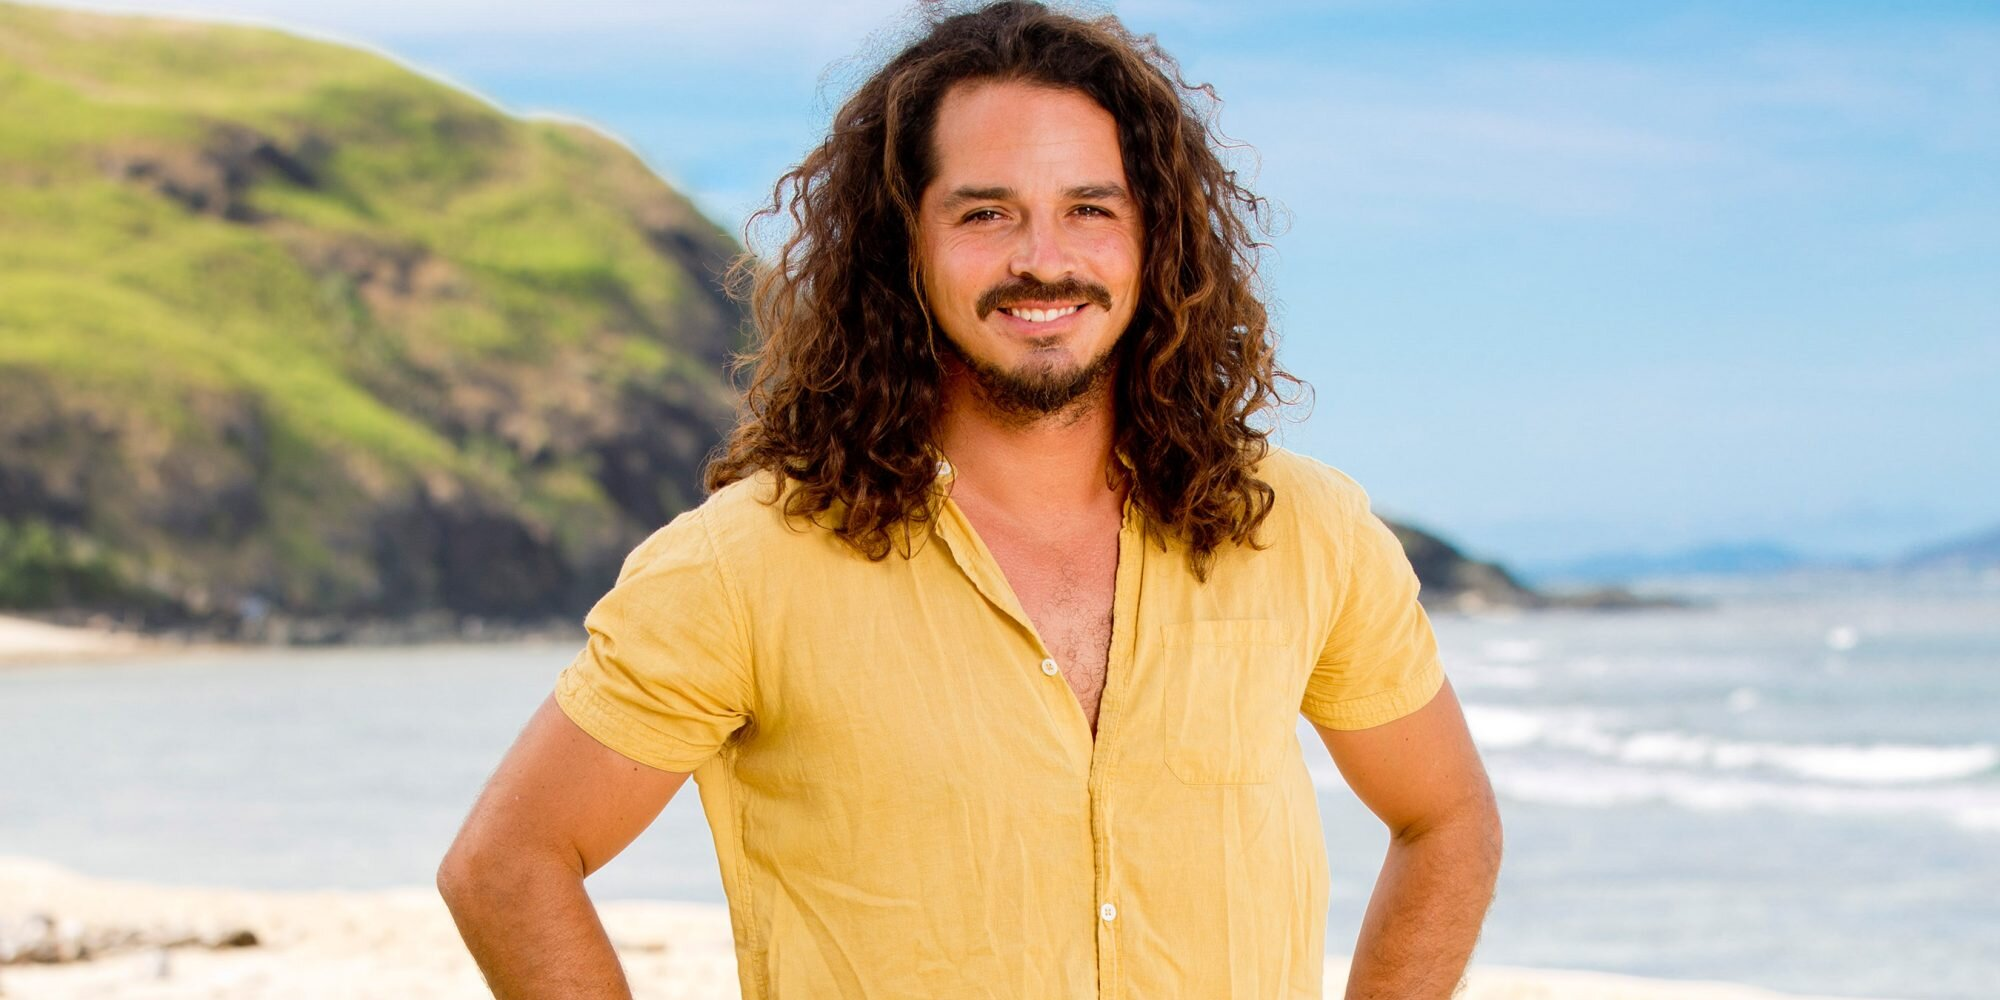 Ozzy Lusth says sex was different after playing 'Survivor'